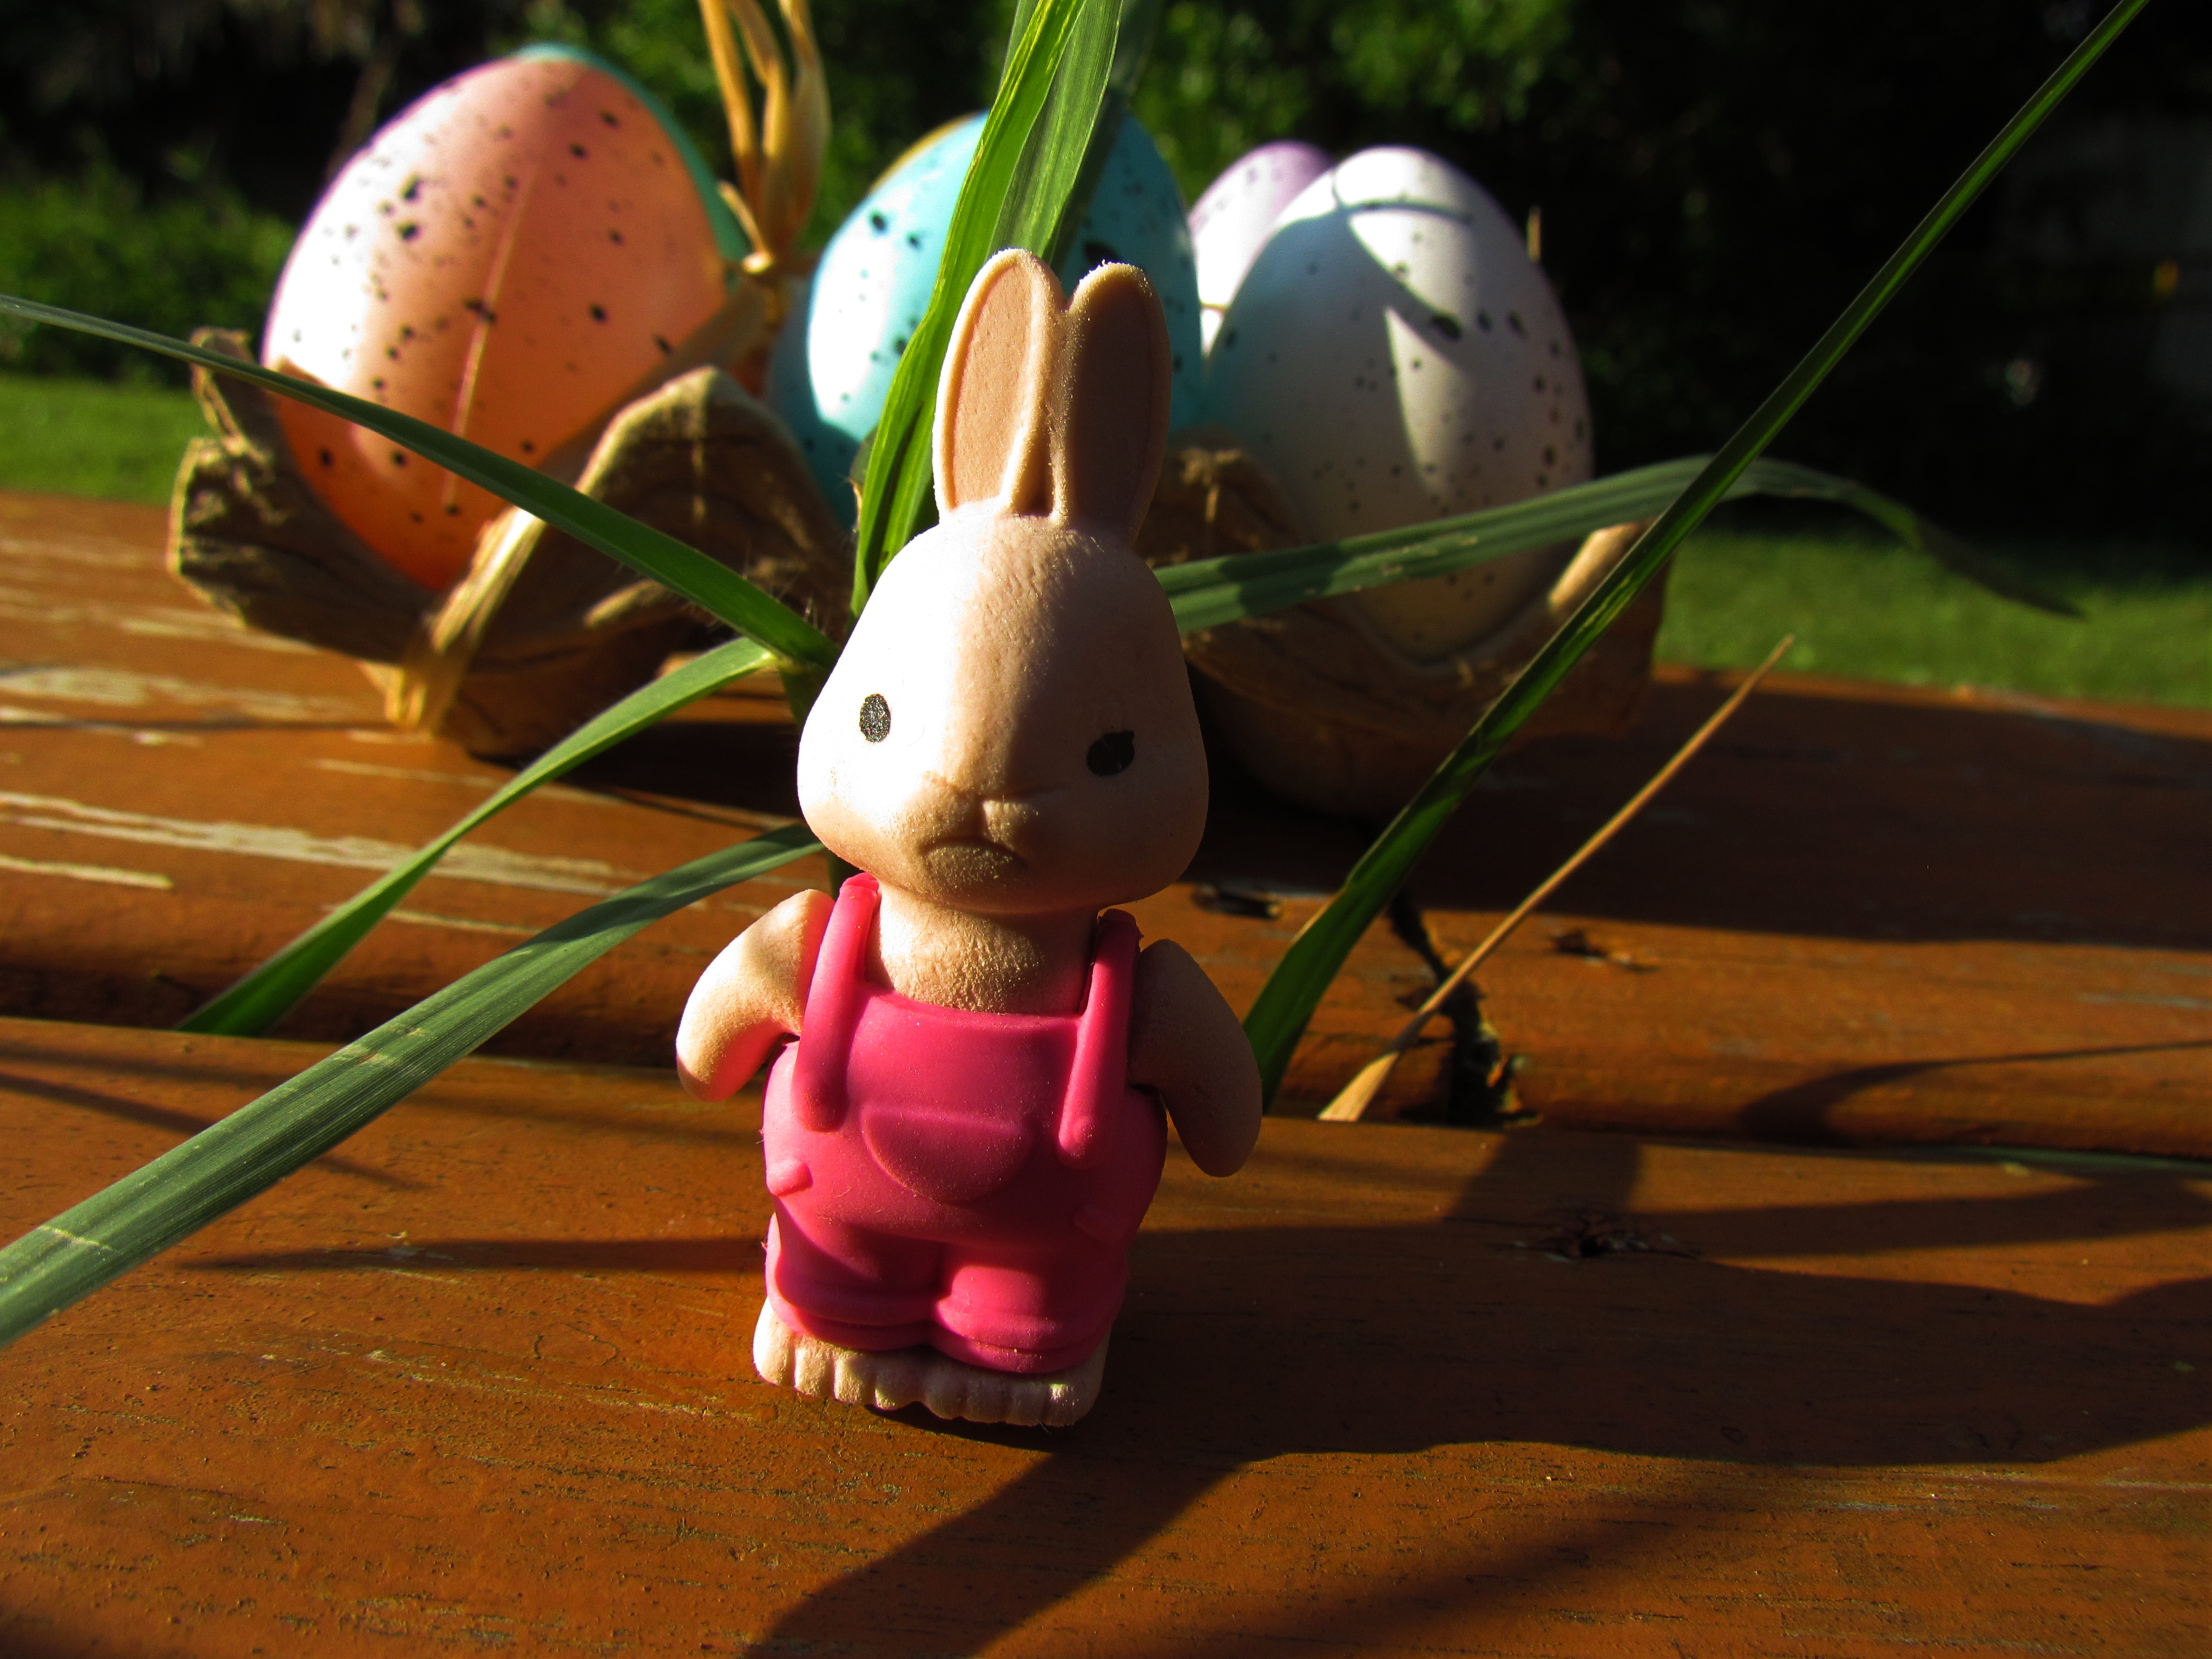 An Easter bunny figurine with pink overalls and speckled Easter Eggs and Egg Crate, Ostara Holidays